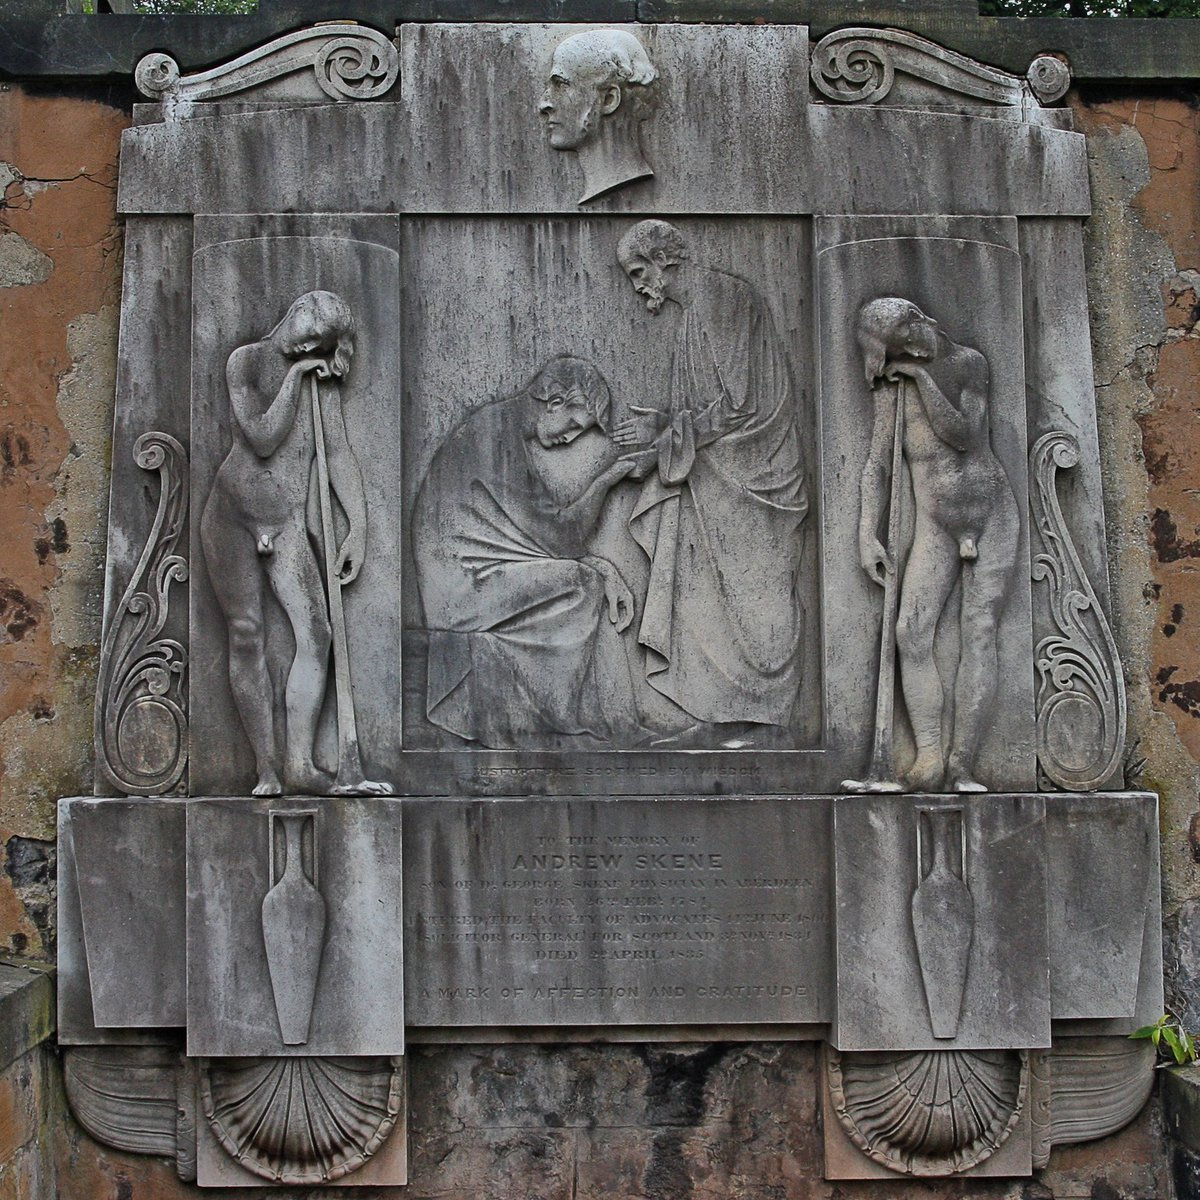 Tombs with a view   The 5 graveyards within #Edinburgh&#39;s #WorldHeritage Site offer fascinating insight into the city&#39;s history.<br>http://pic.twitter.com/am8JuG6FLI